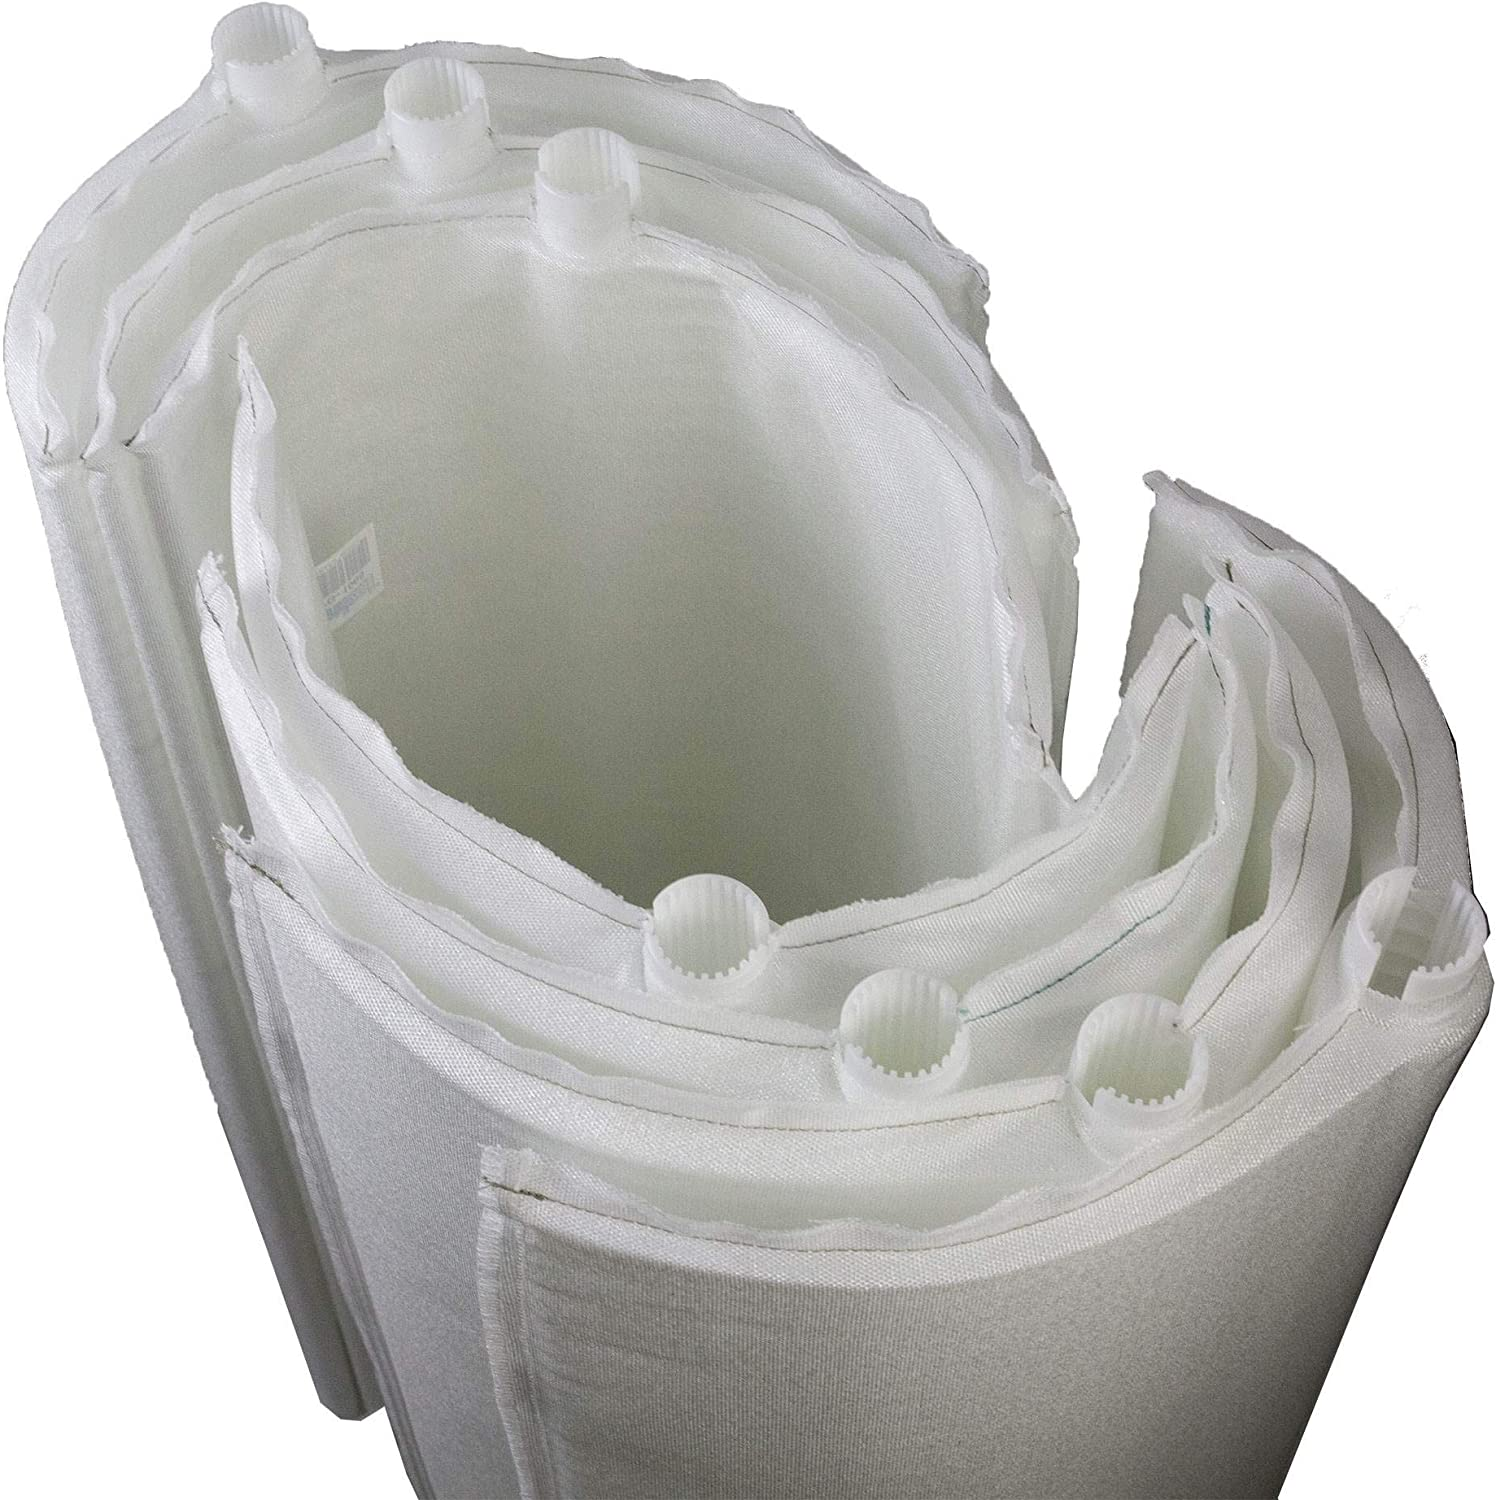 7 UNICEL FG-1005 D.E. Filters 5% OFF Long Beach Mall Full 60 Required 30